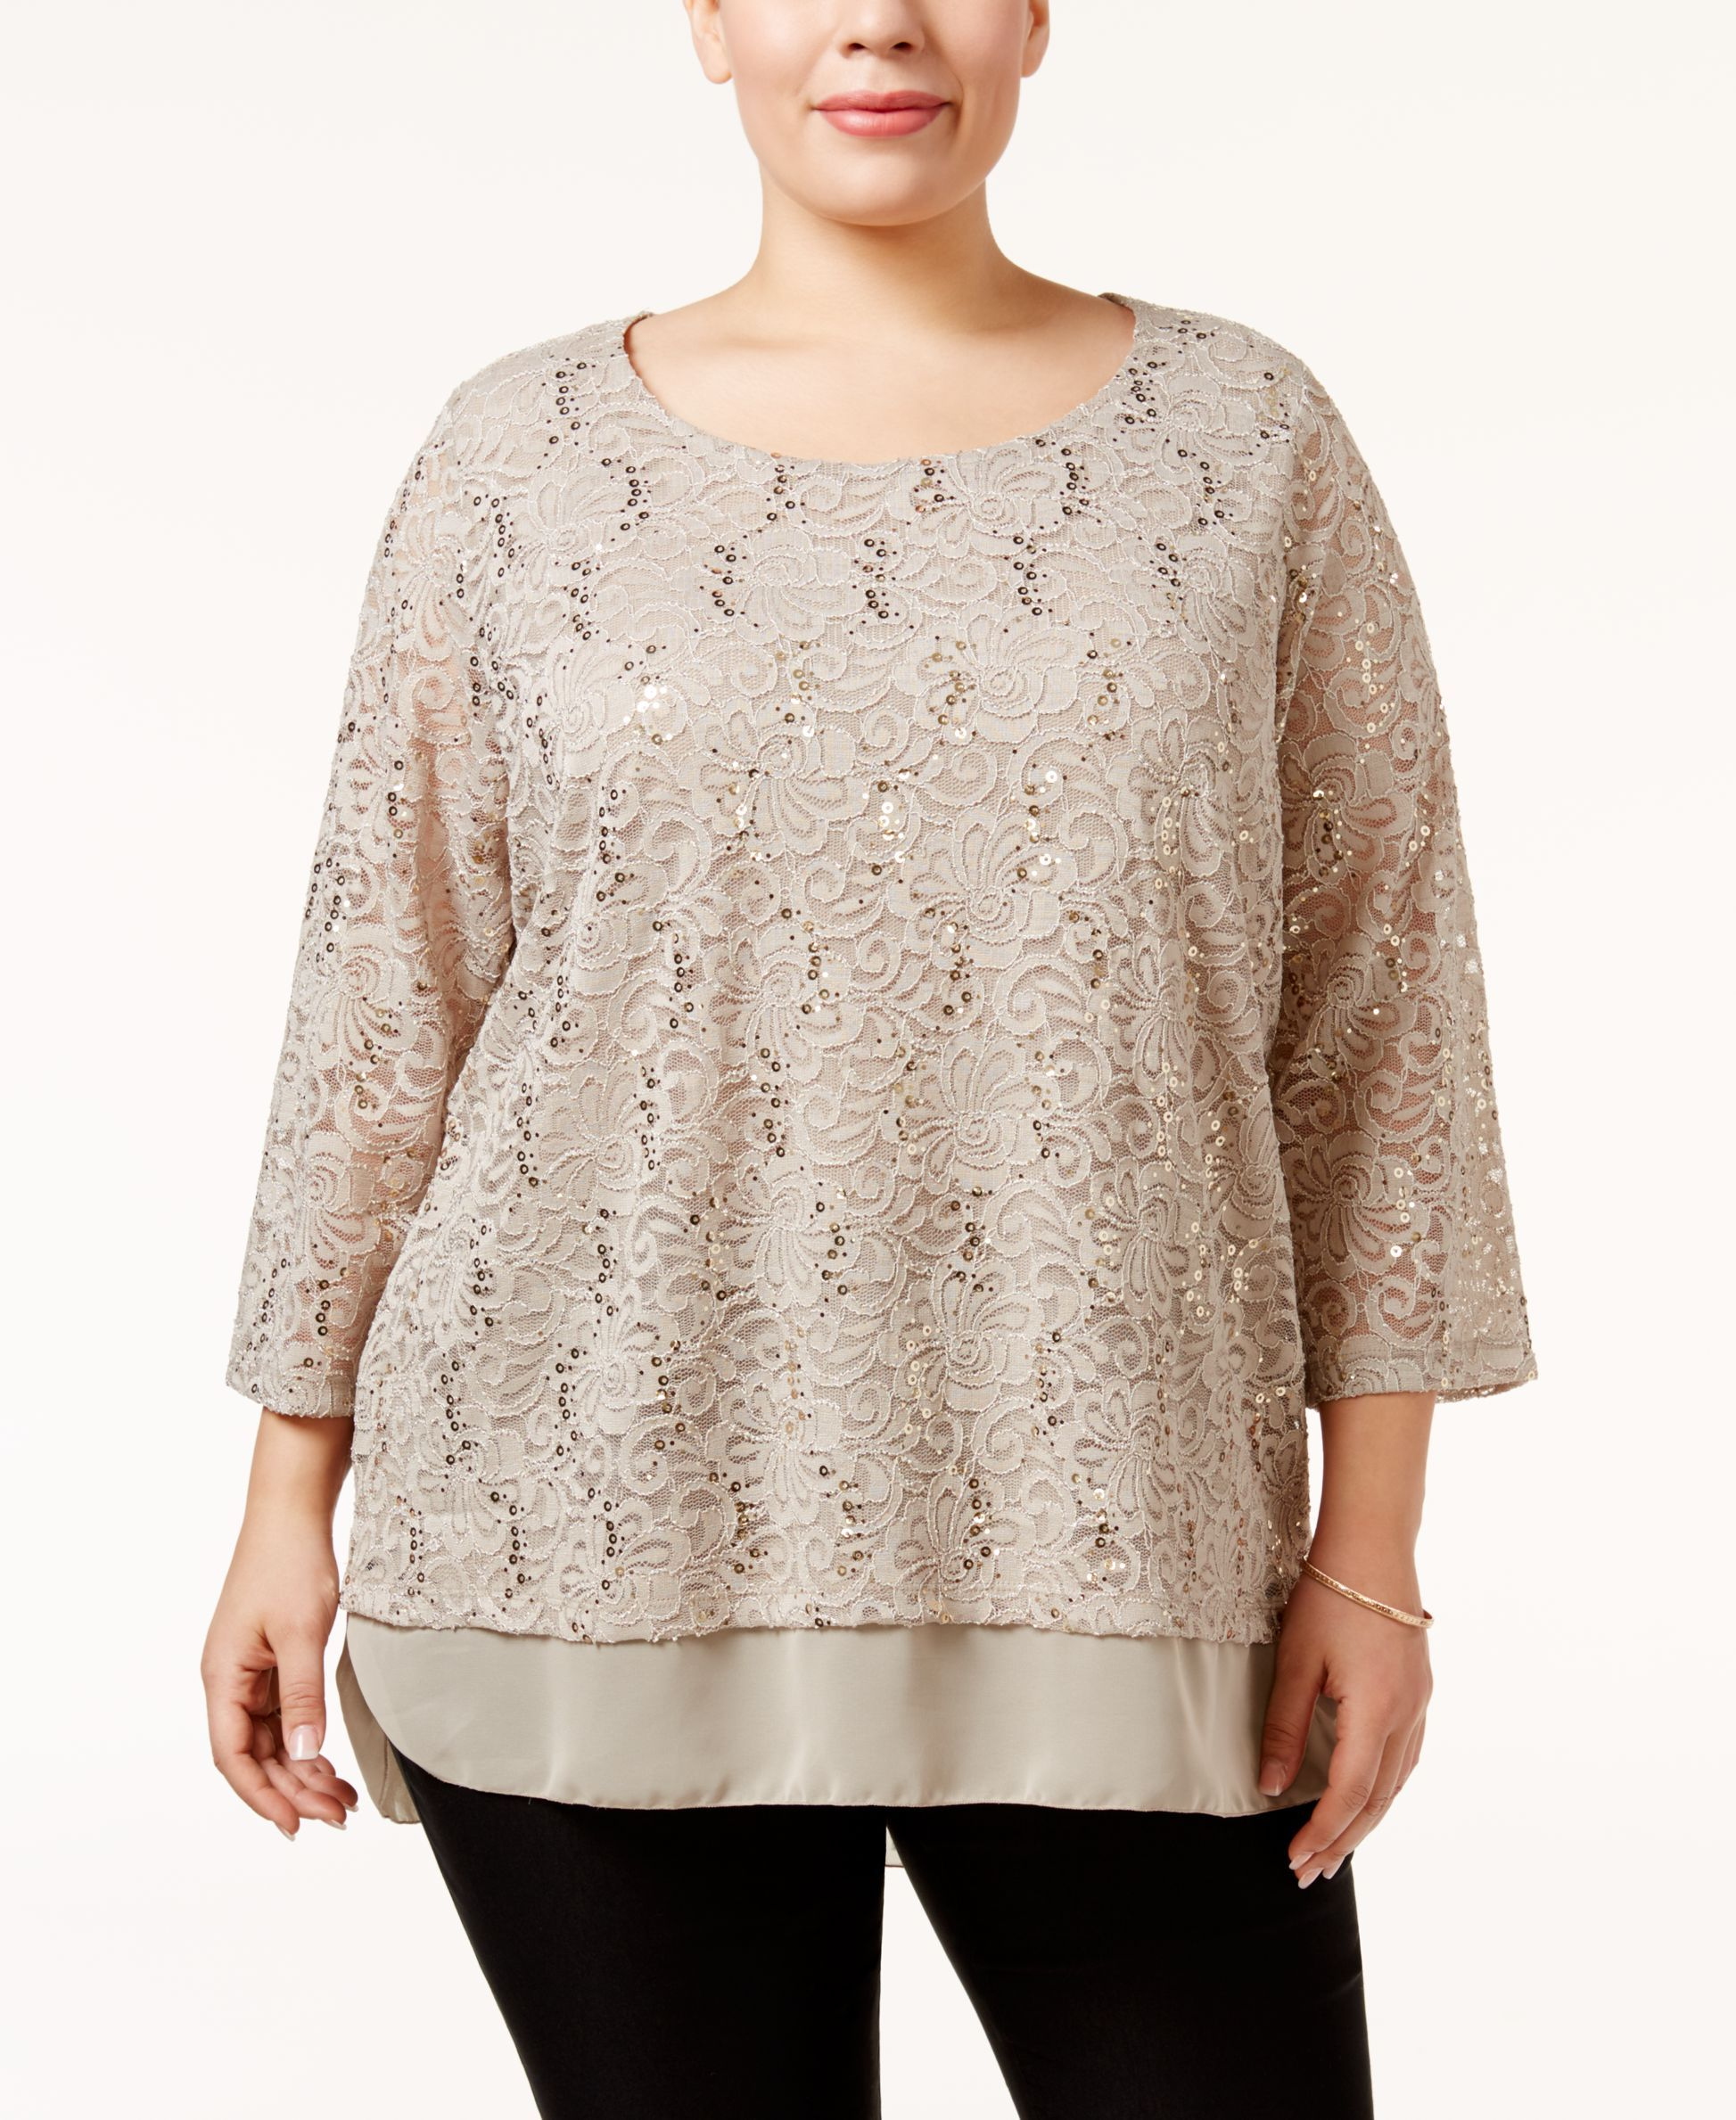 201f2643a97 Jm Collection Plus Size Embellished Lace Tunic